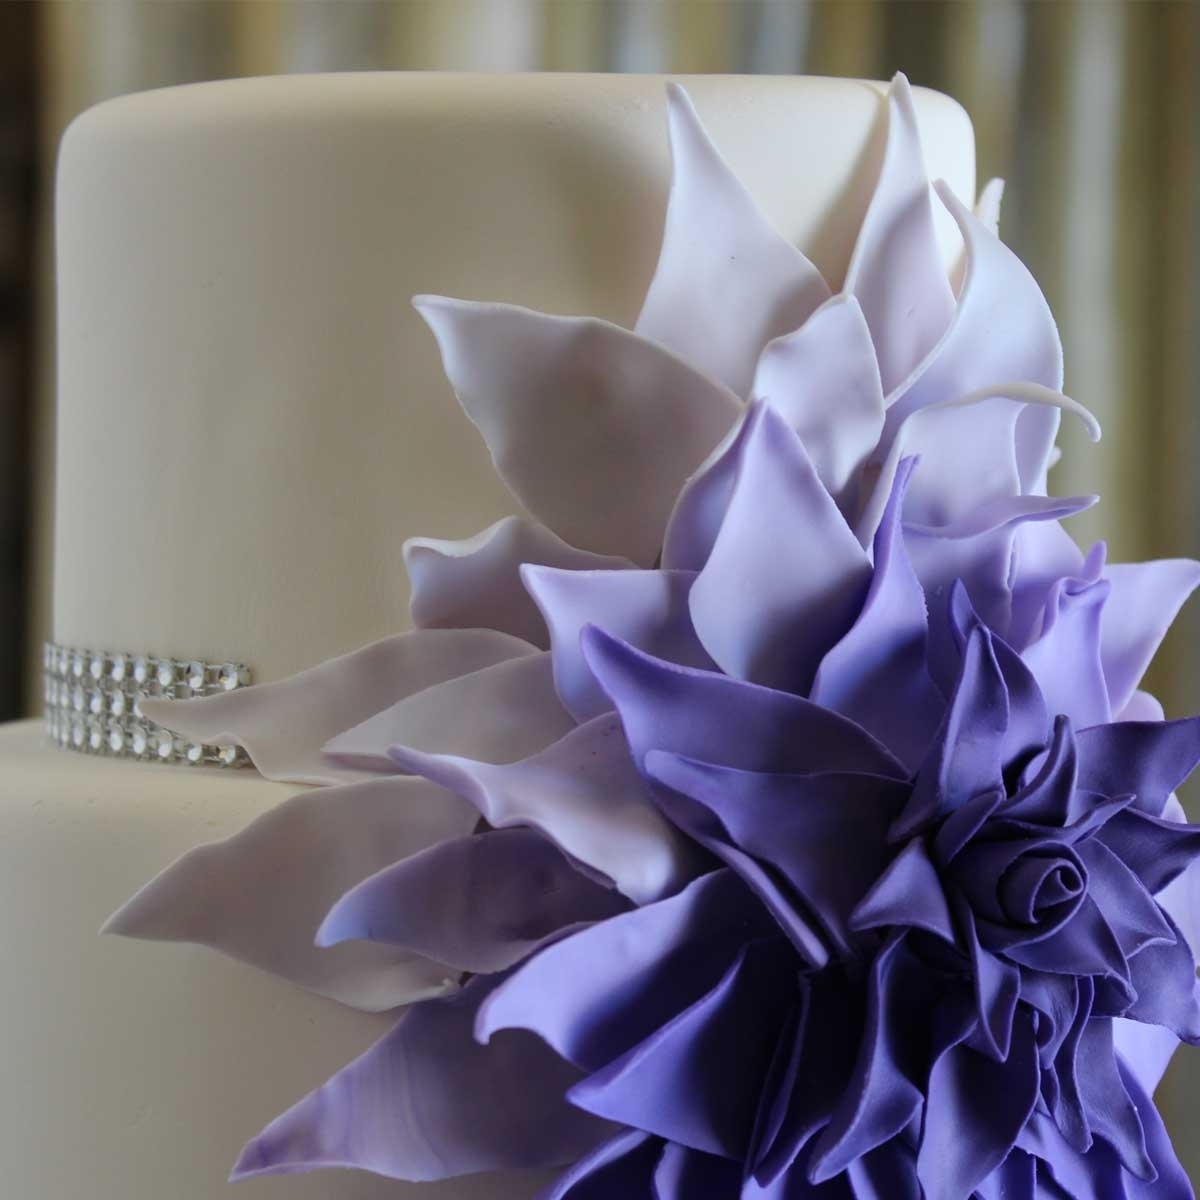 Invermere Bakery - Wedding Cake